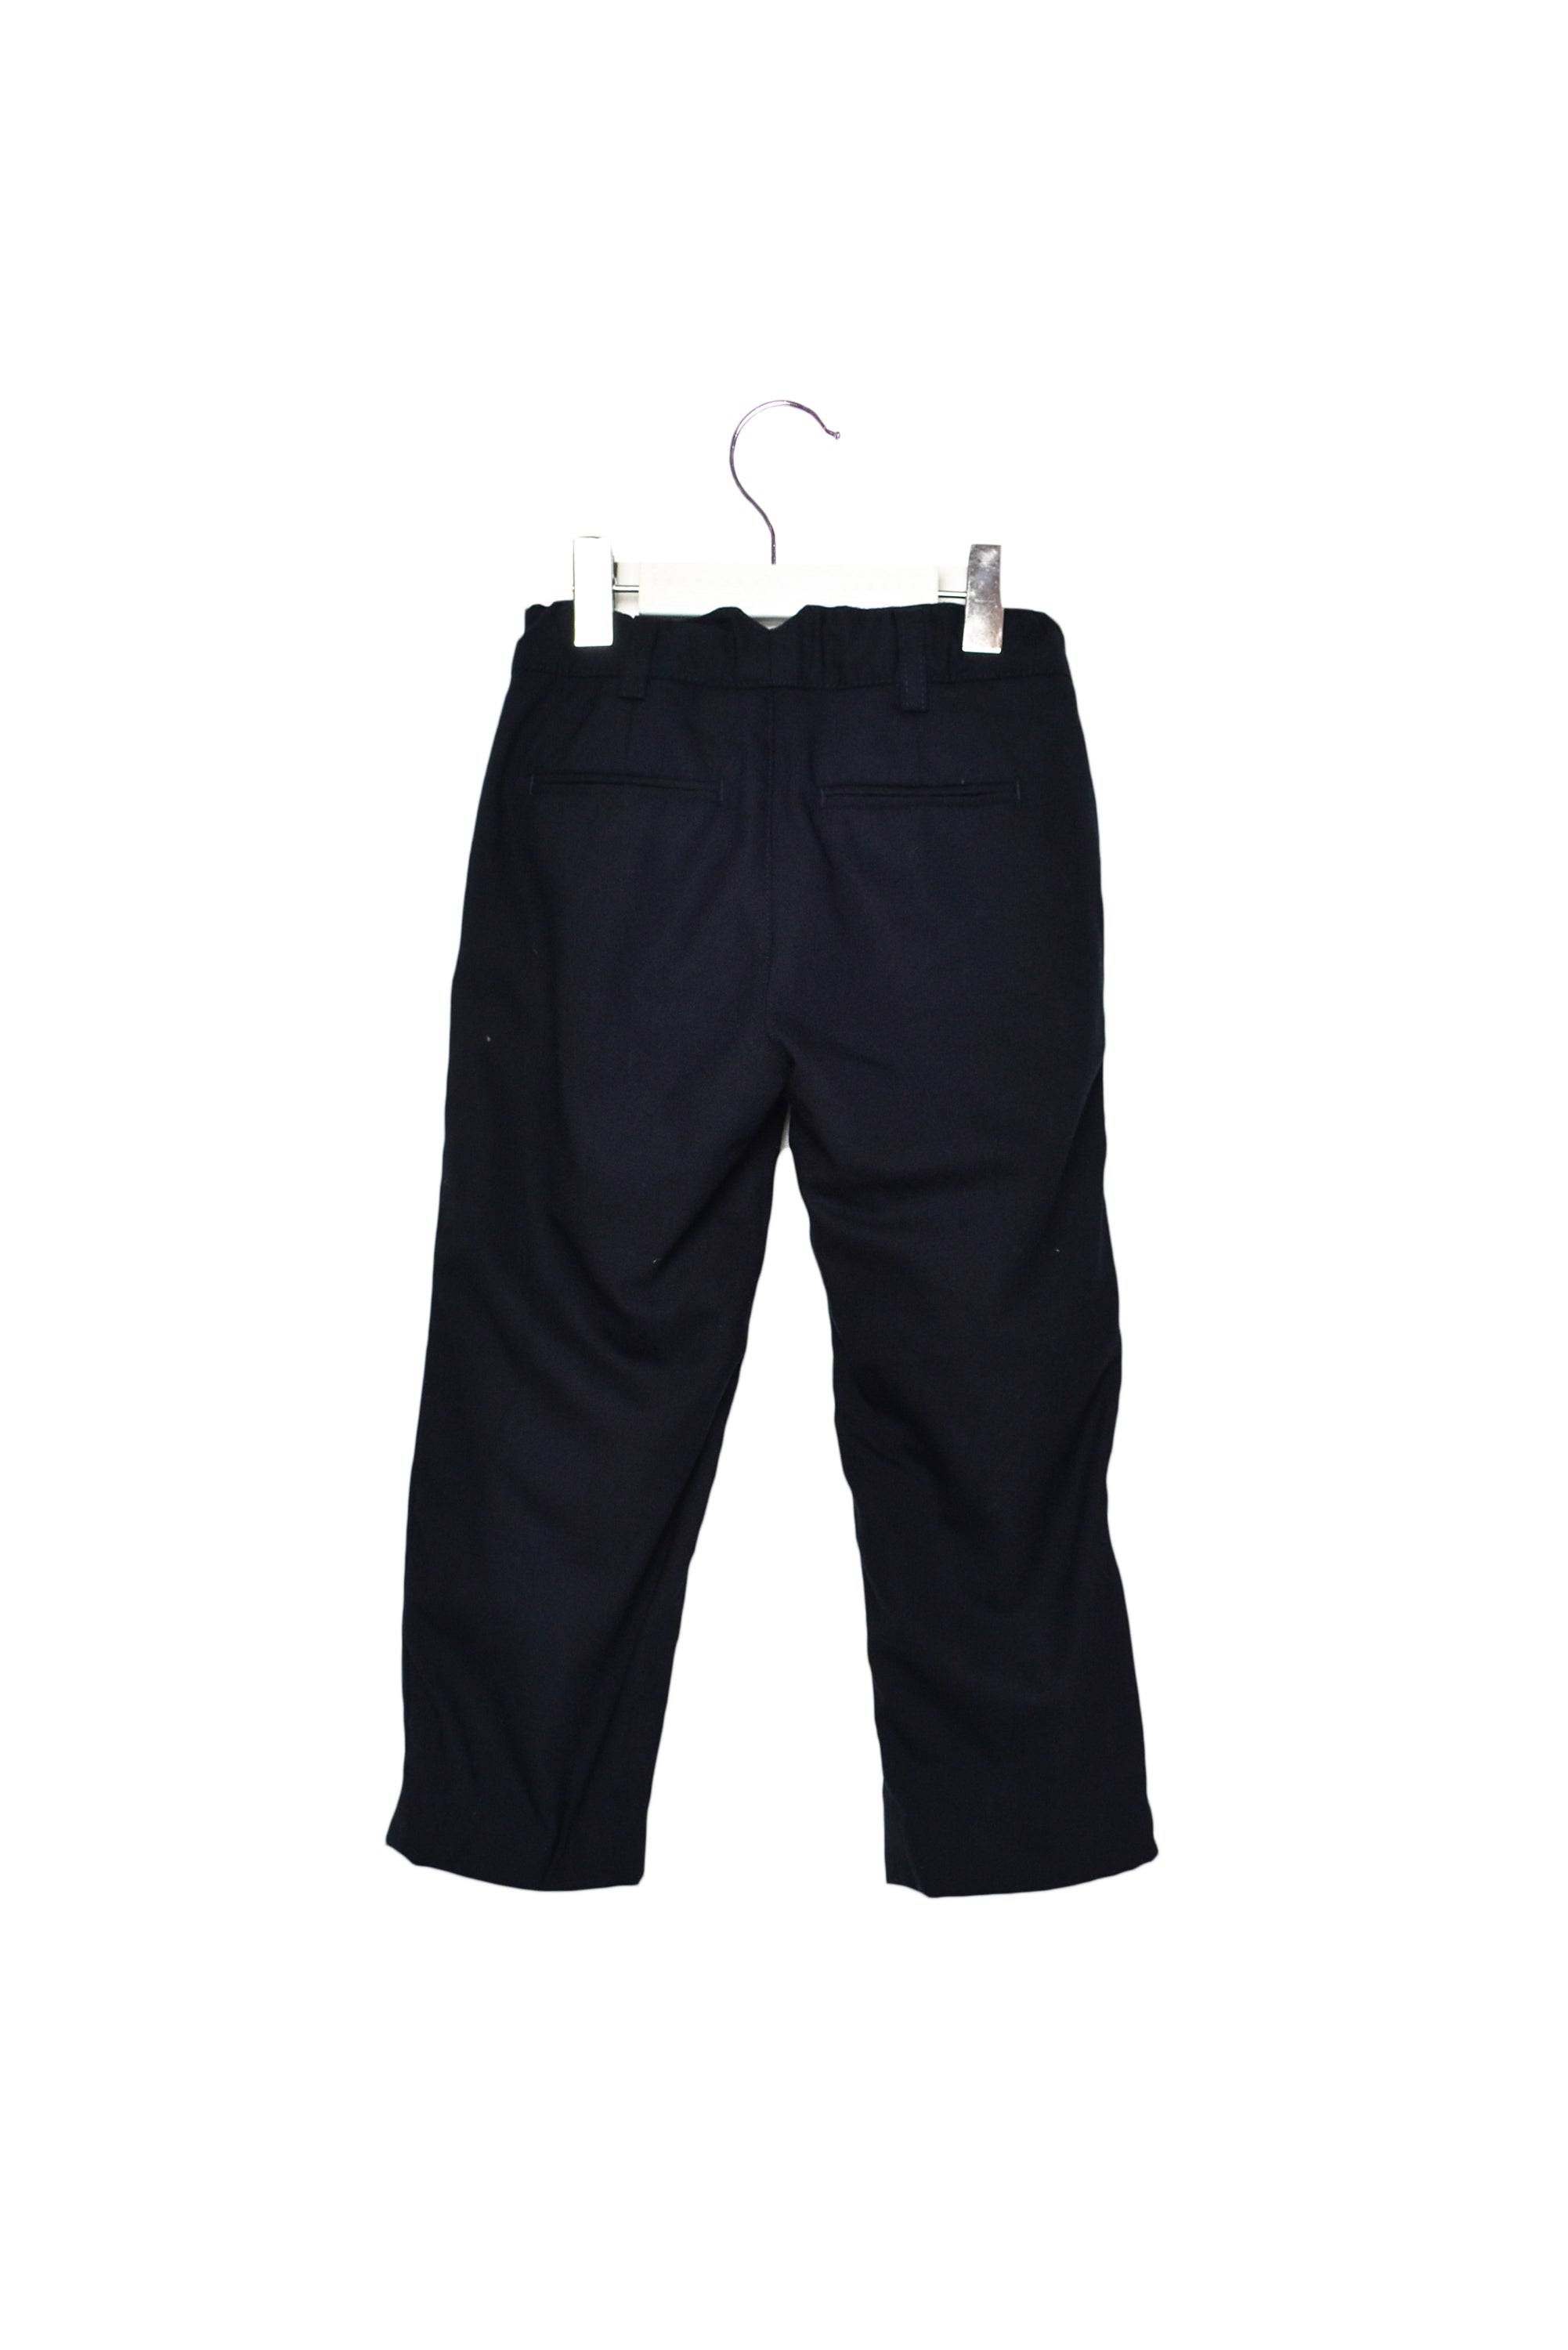 10012069 Jacadi Kids~Pants 4T at Retykle